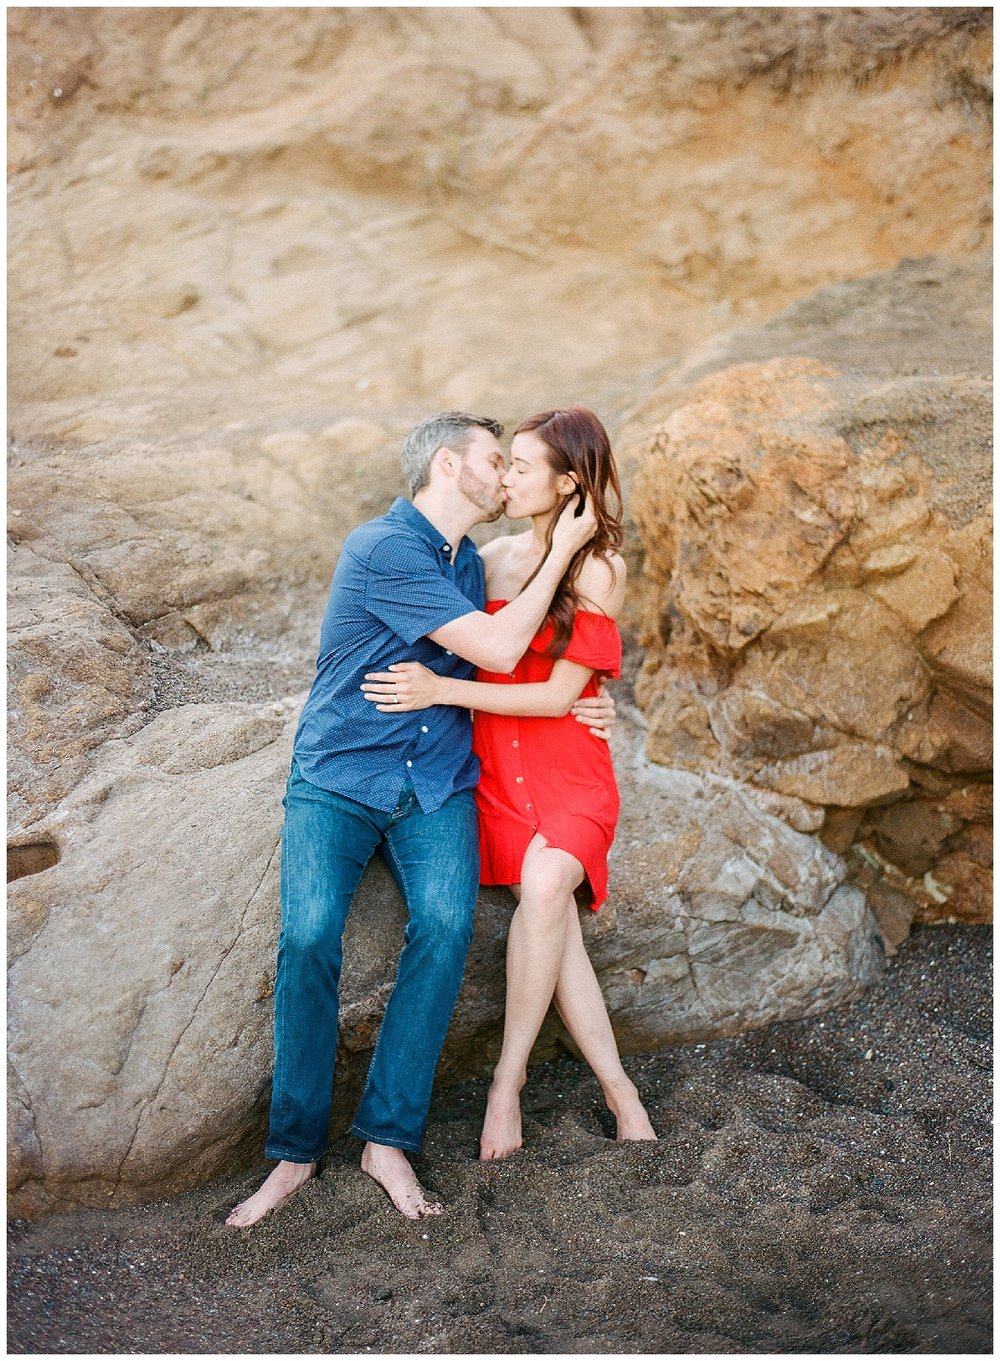 Janine_Licare_Photography_San_Francisco_Wedding_Photographer_0019.jpg